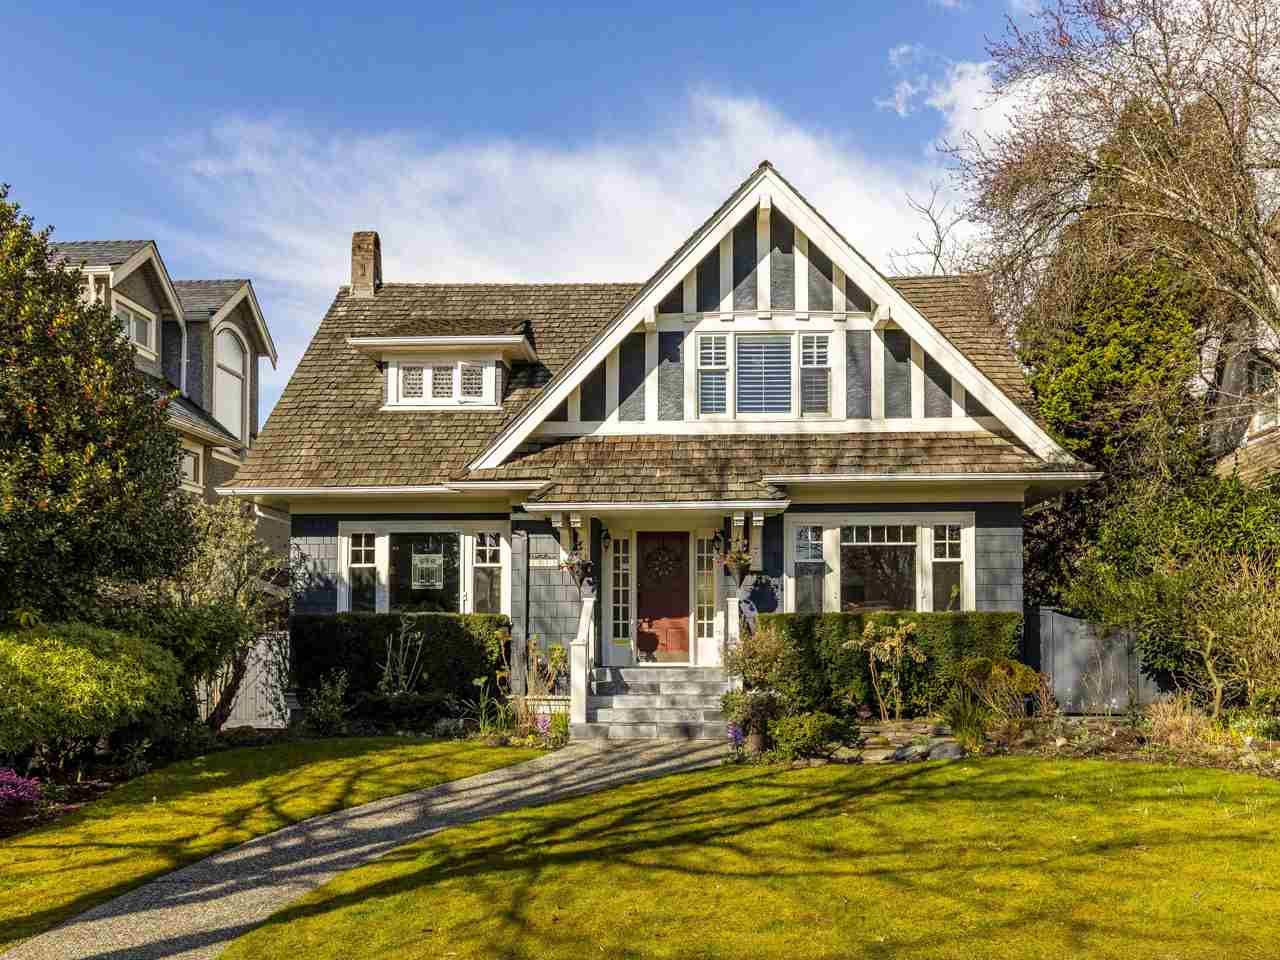 """Main Photo: 1913 W 45TH Avenue in Vancouver: Kerrisdale House for sale in """"Kerrisdale"""" (Vancouver West)  : MLS®# R2552534"""